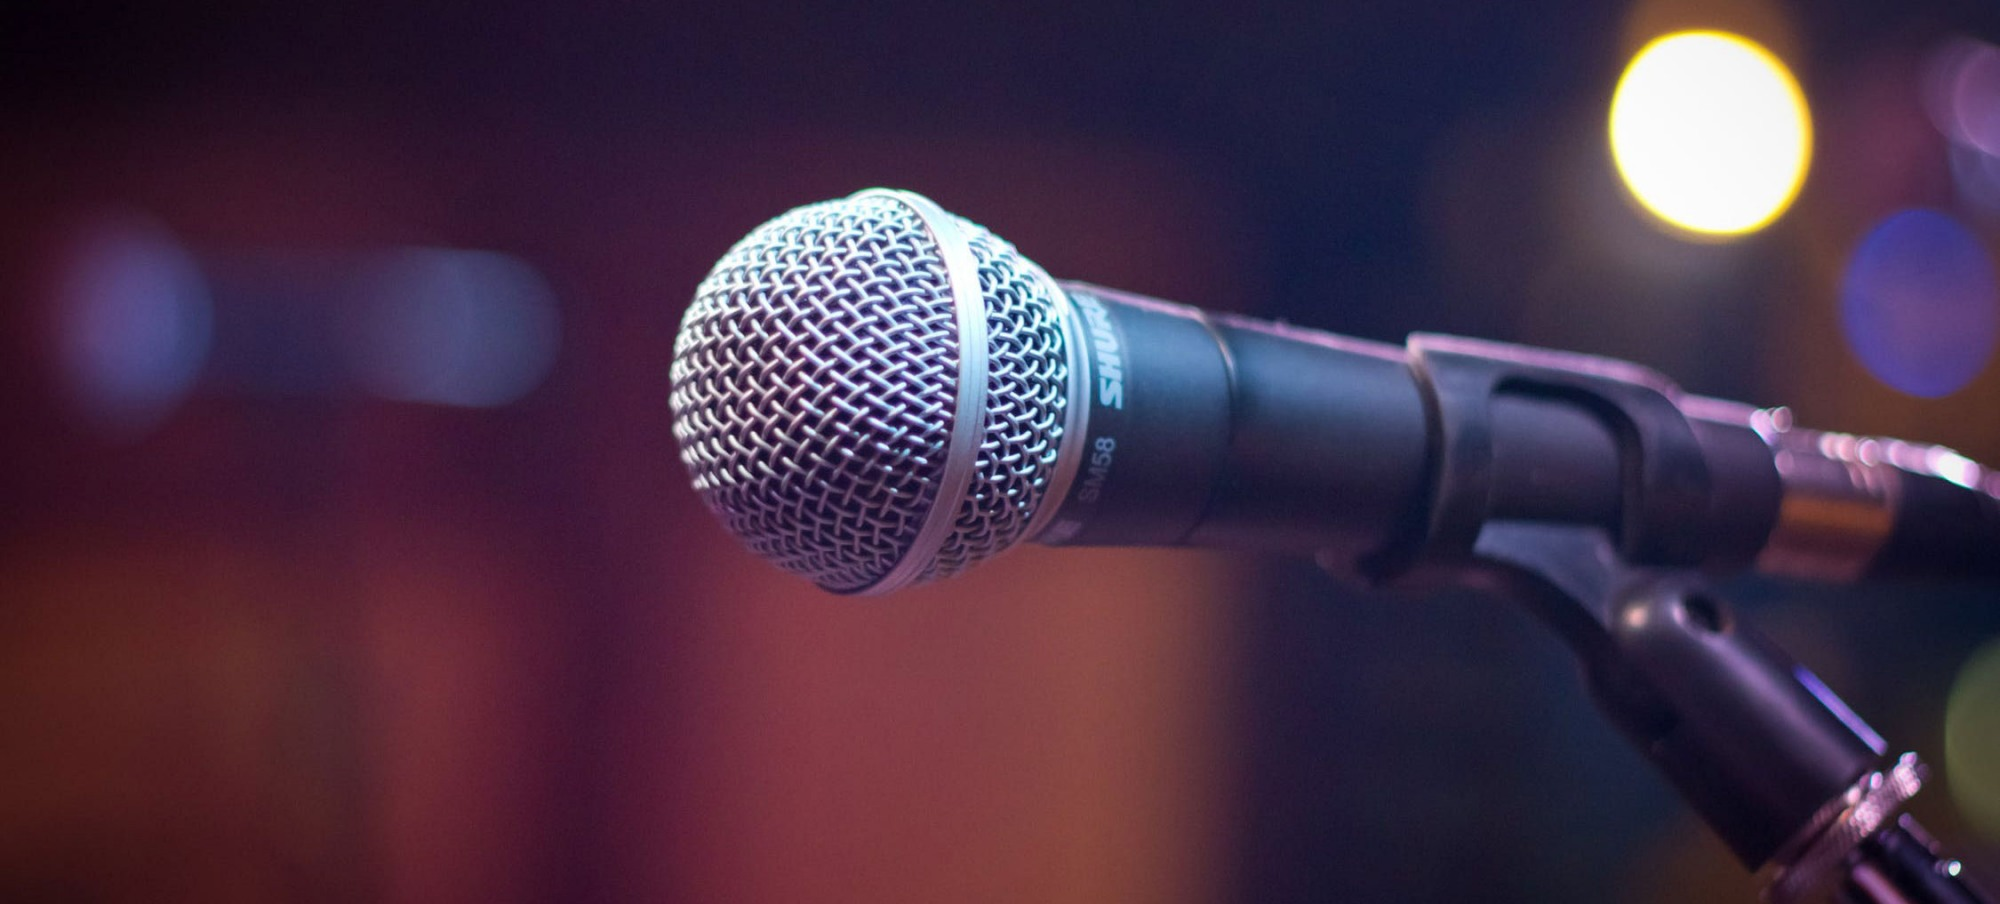 Microphone Placement Tips for Singing on Smule - The Smule Sing ...